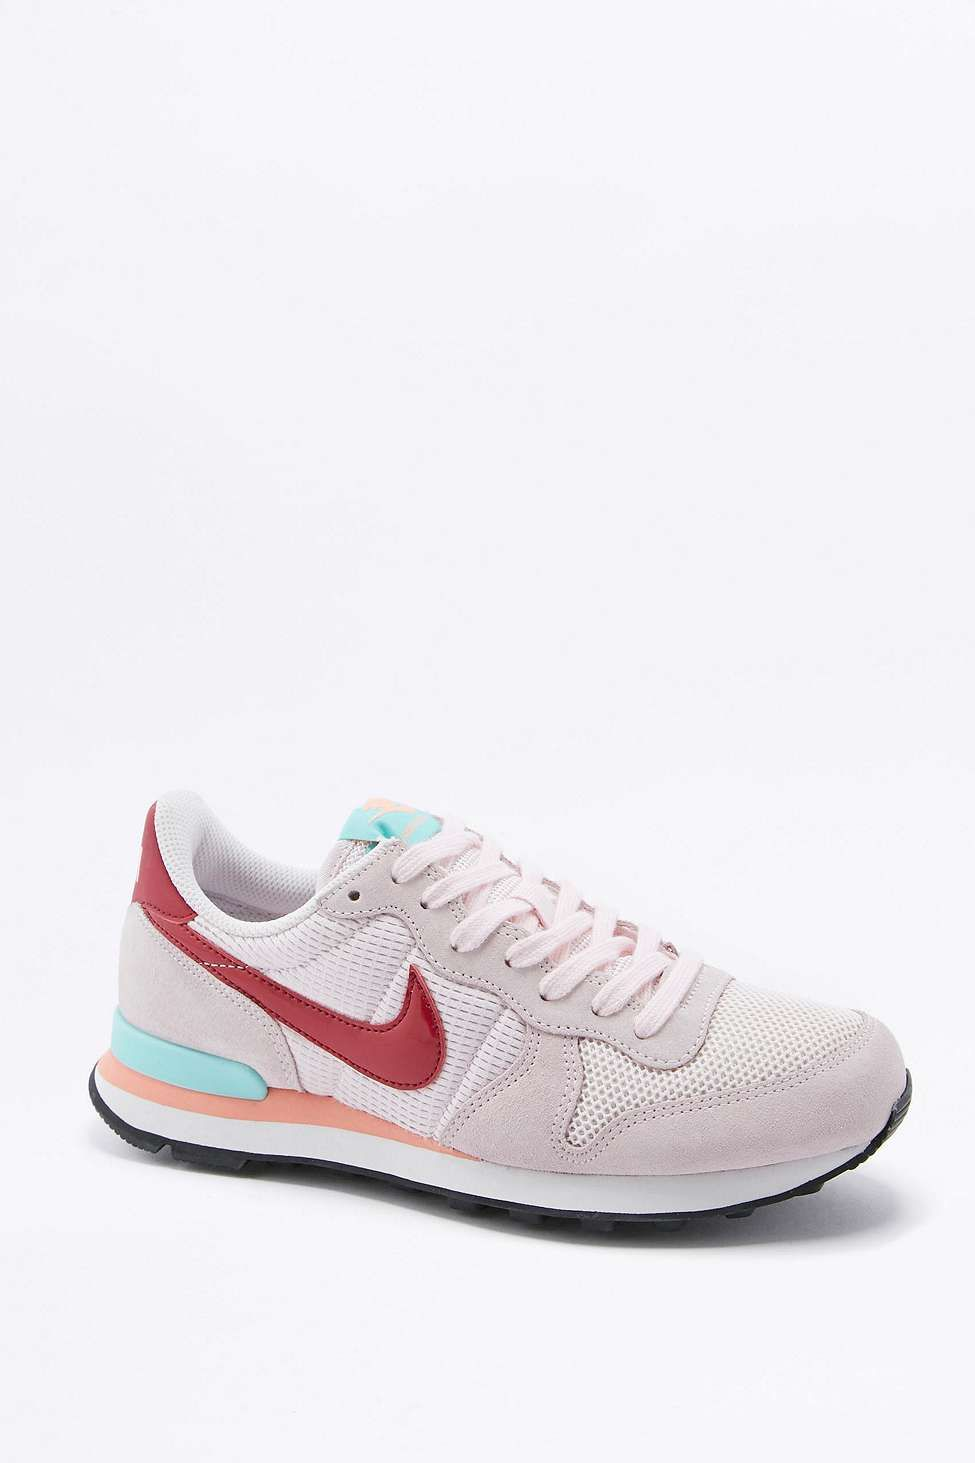 nike internationalist pink and red trainers